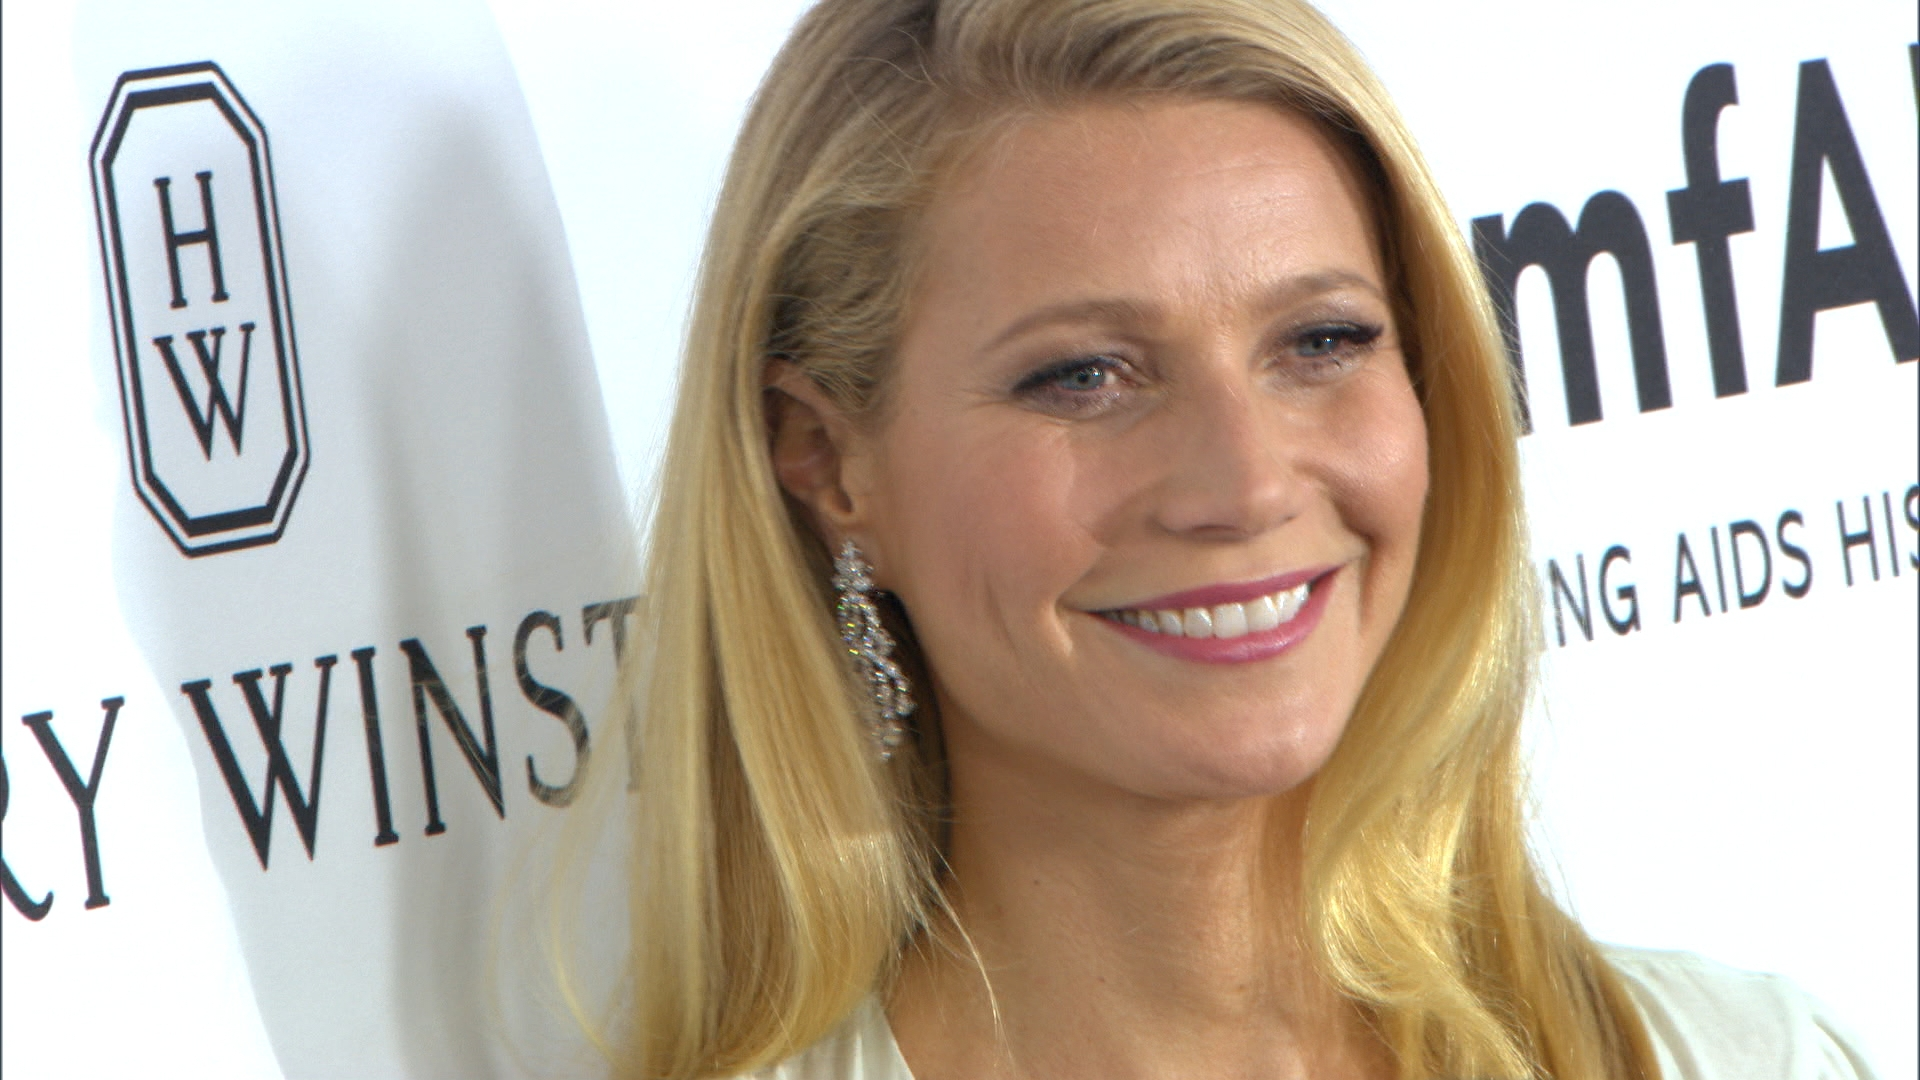 Gwyneth Paltrow Reveals Painful Beauty Treatment